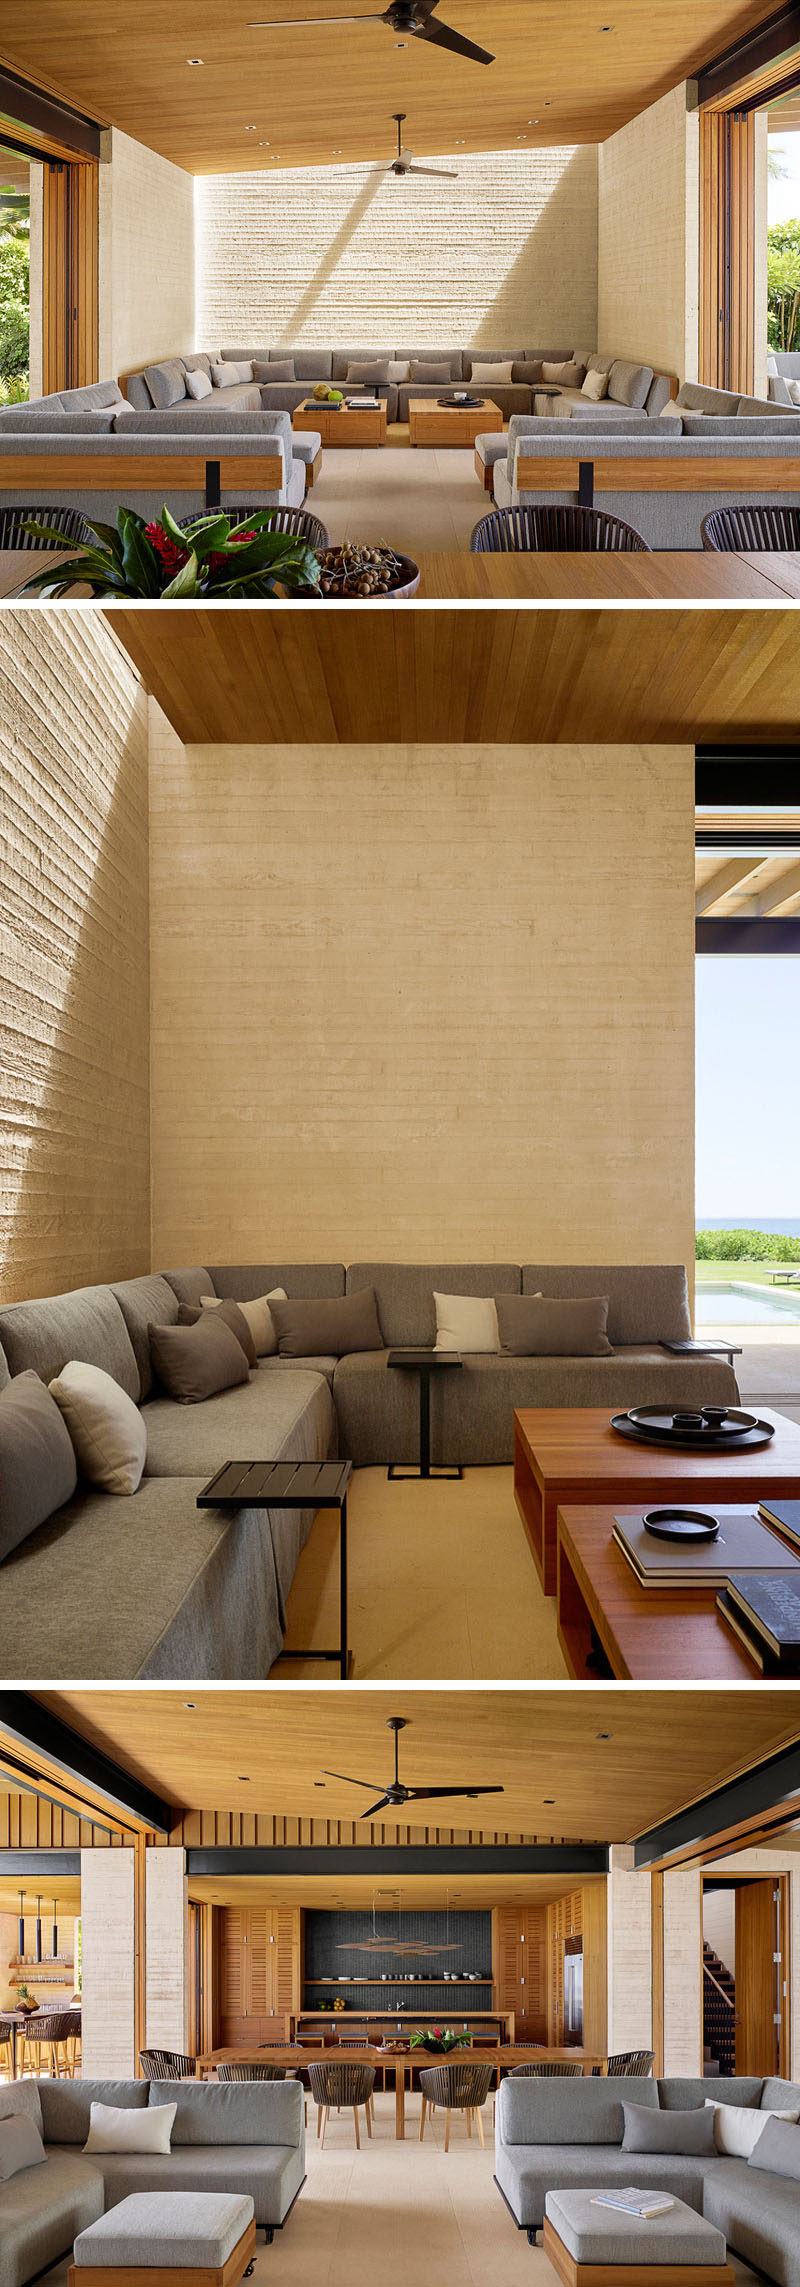 Inside this open beach house, there's a custom couch design that fits in one end of the room. Light sand colored walls, wood and grey furniture create a relaxed and comfortable space. #LivingRoom #OpenPlanLiving